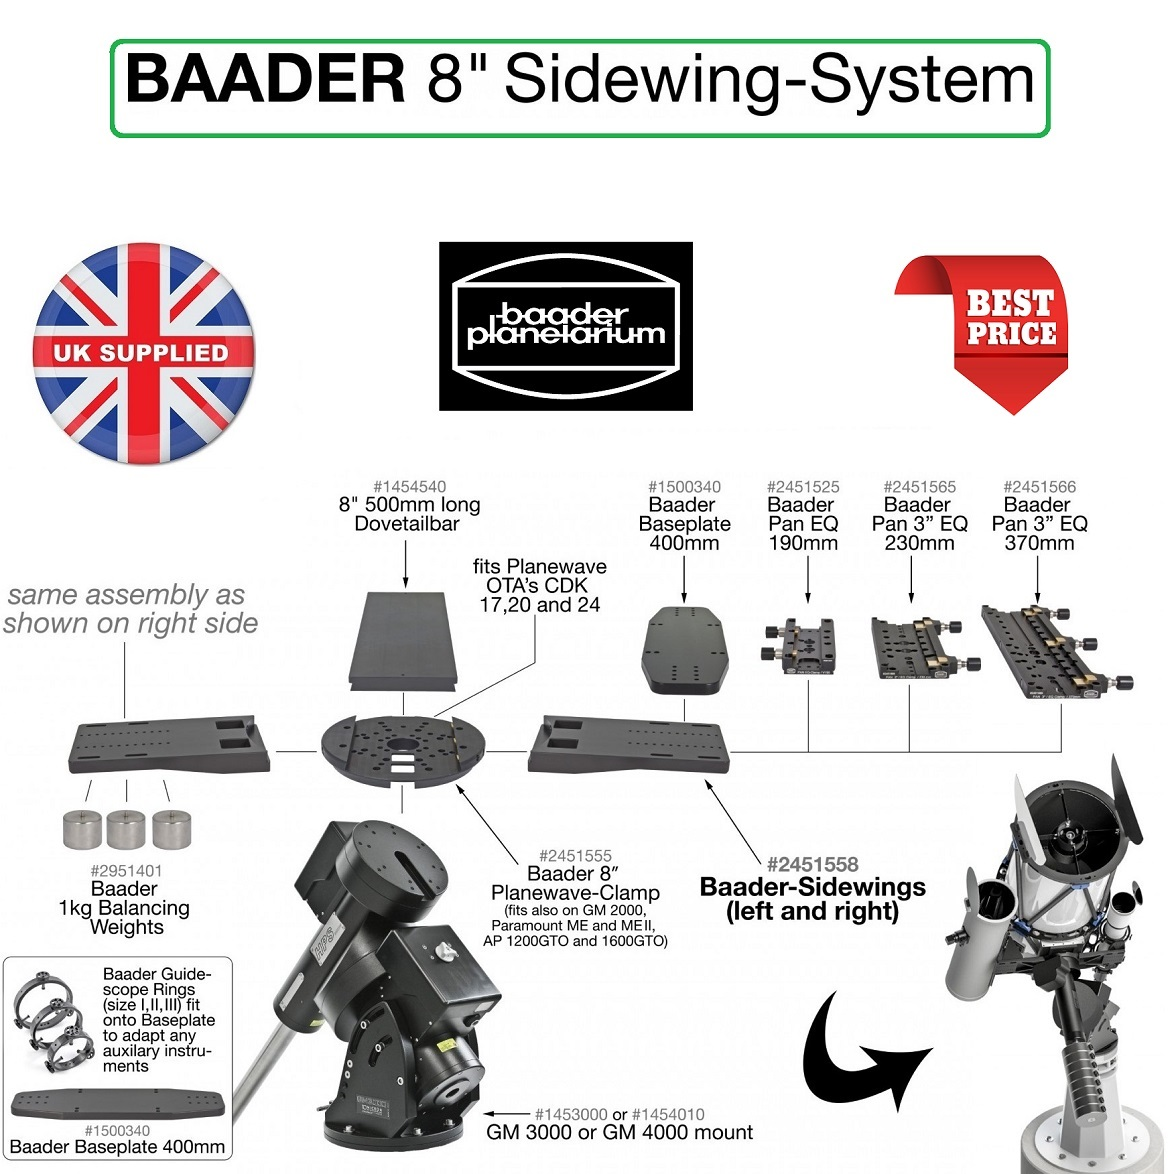 Baader BP II Guidescope Rings